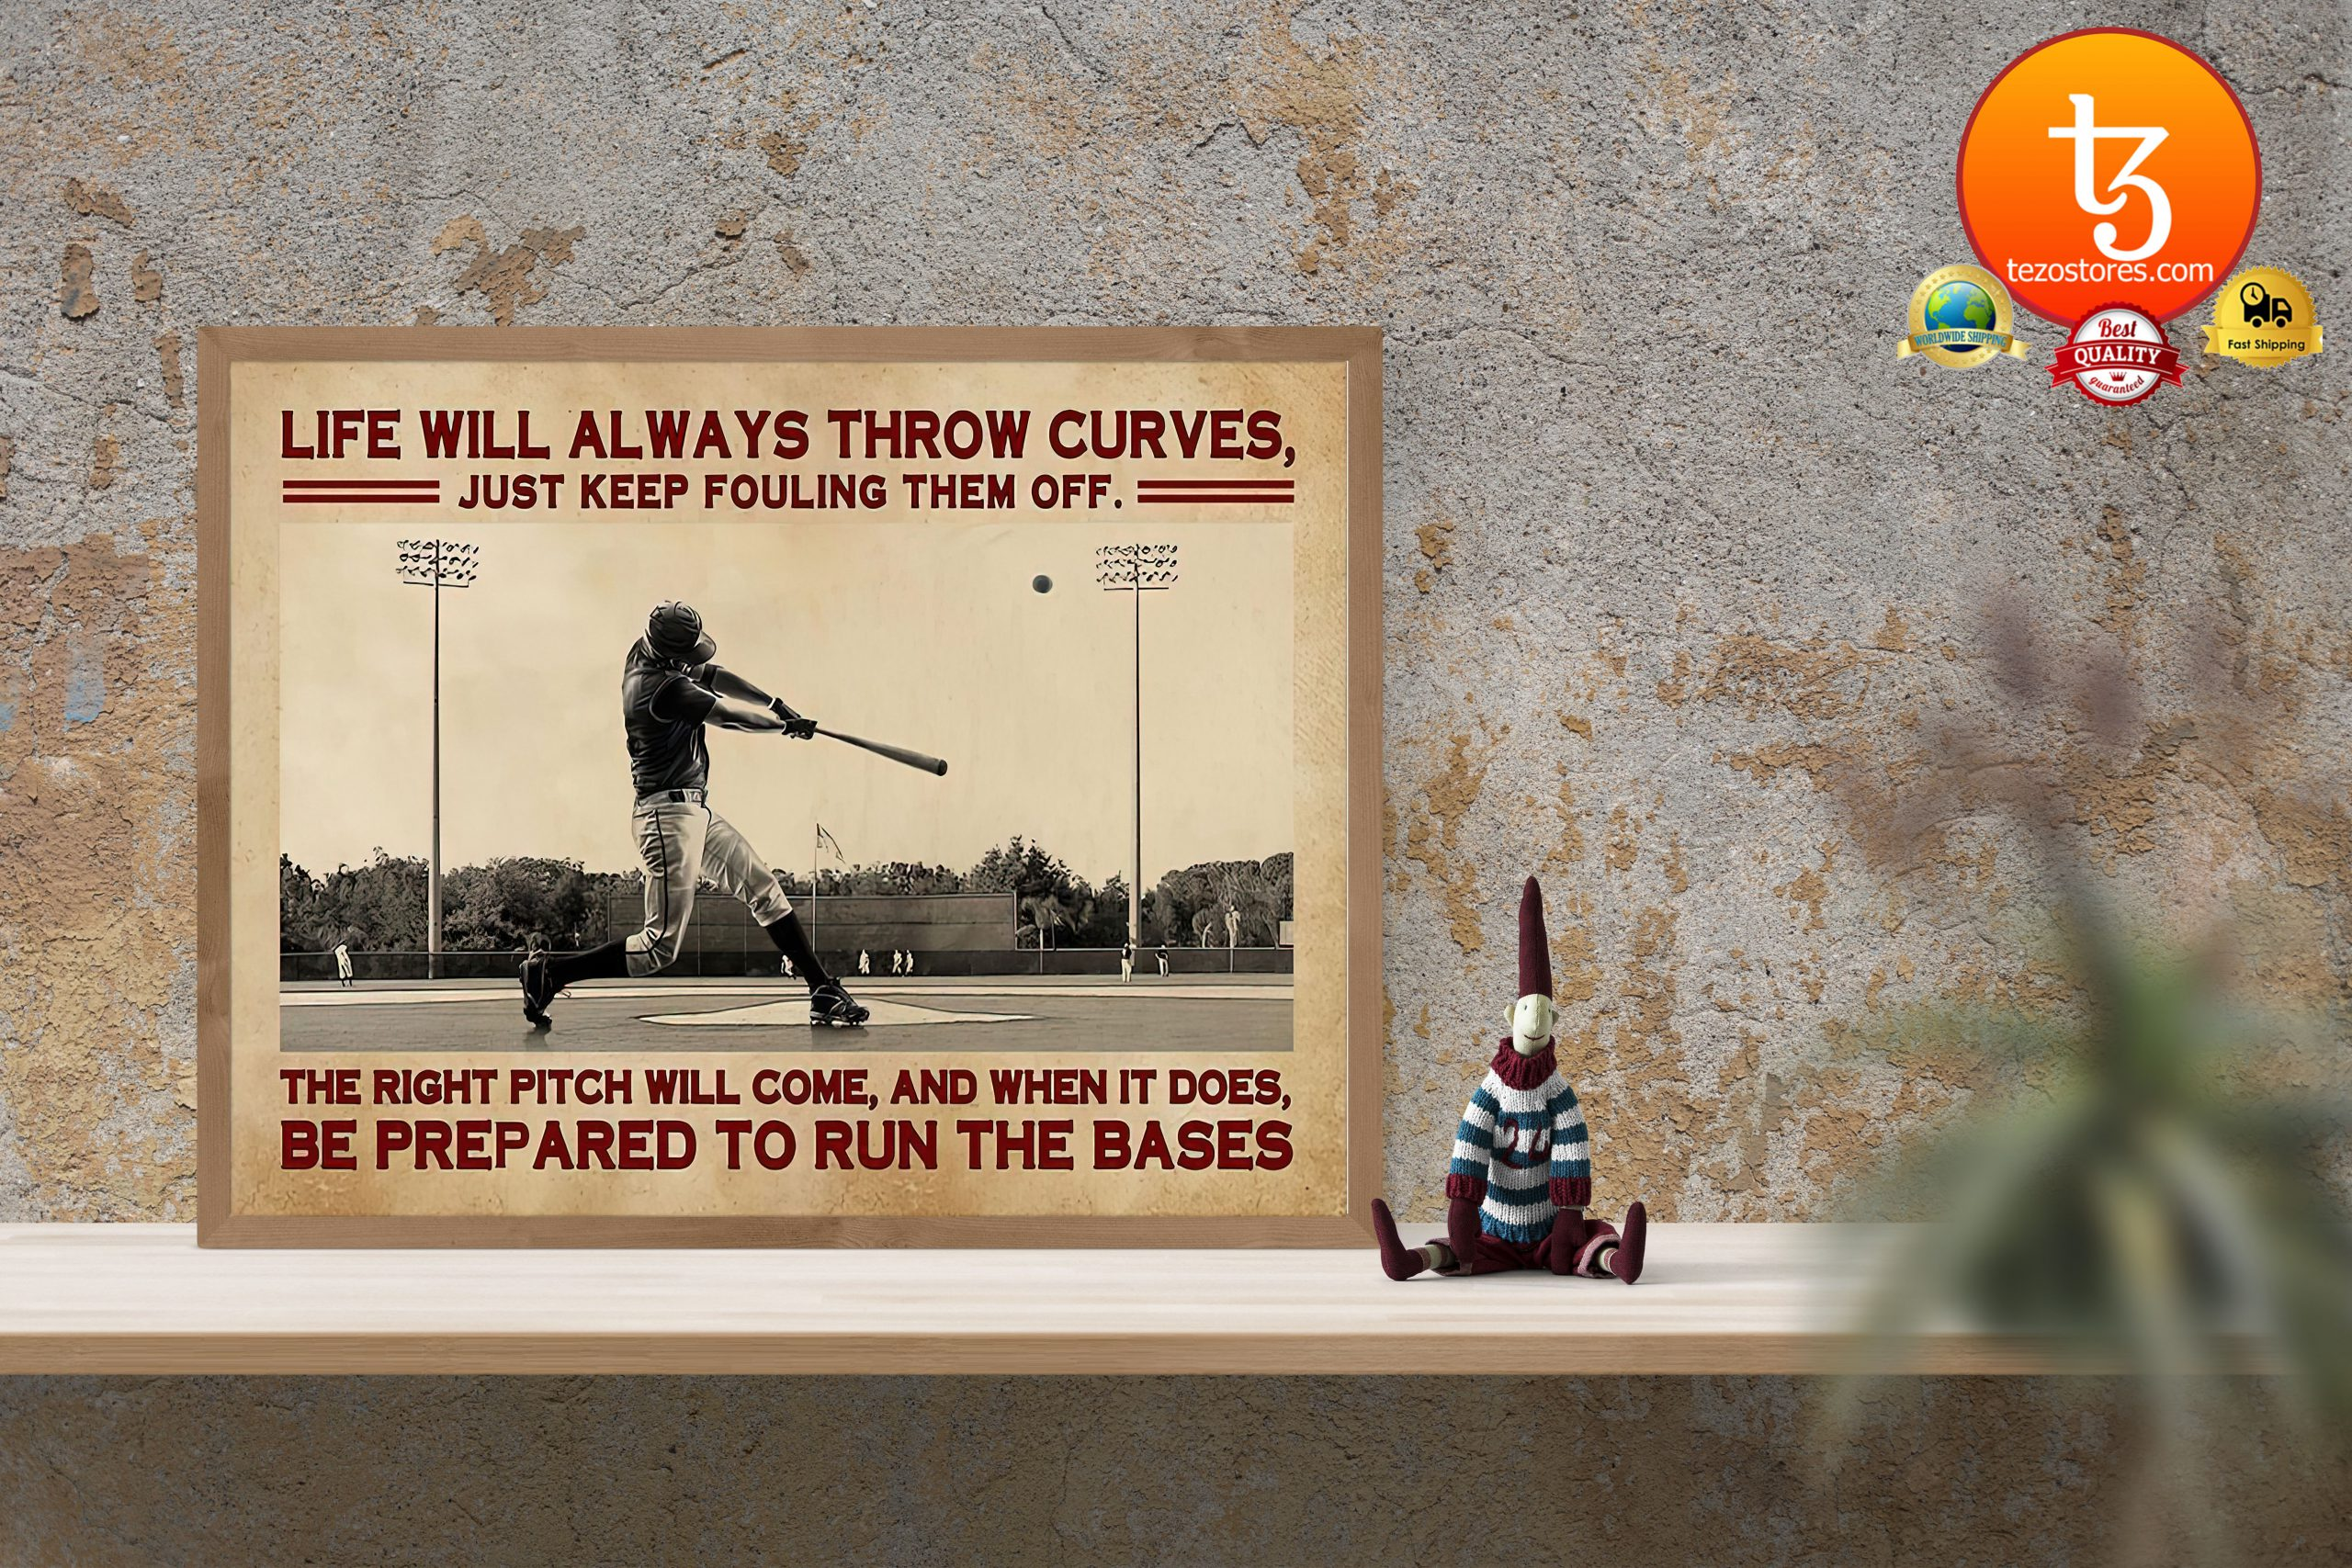 Baseball life will always throw curves just keep fouling them off poster3